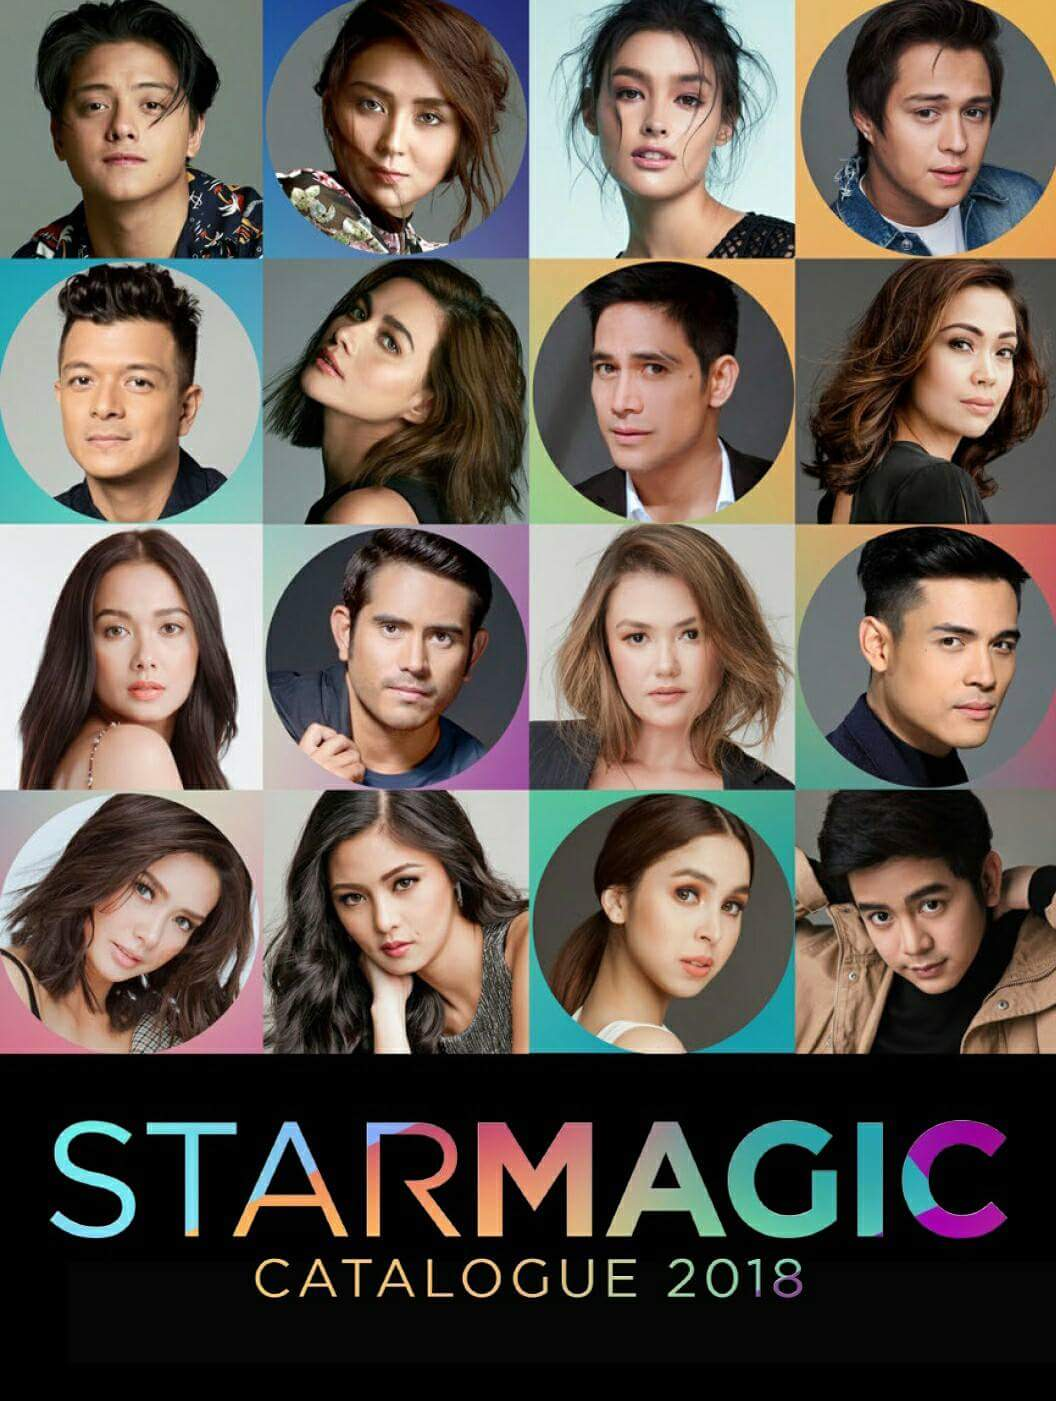 Star Magic Catalogue 2018